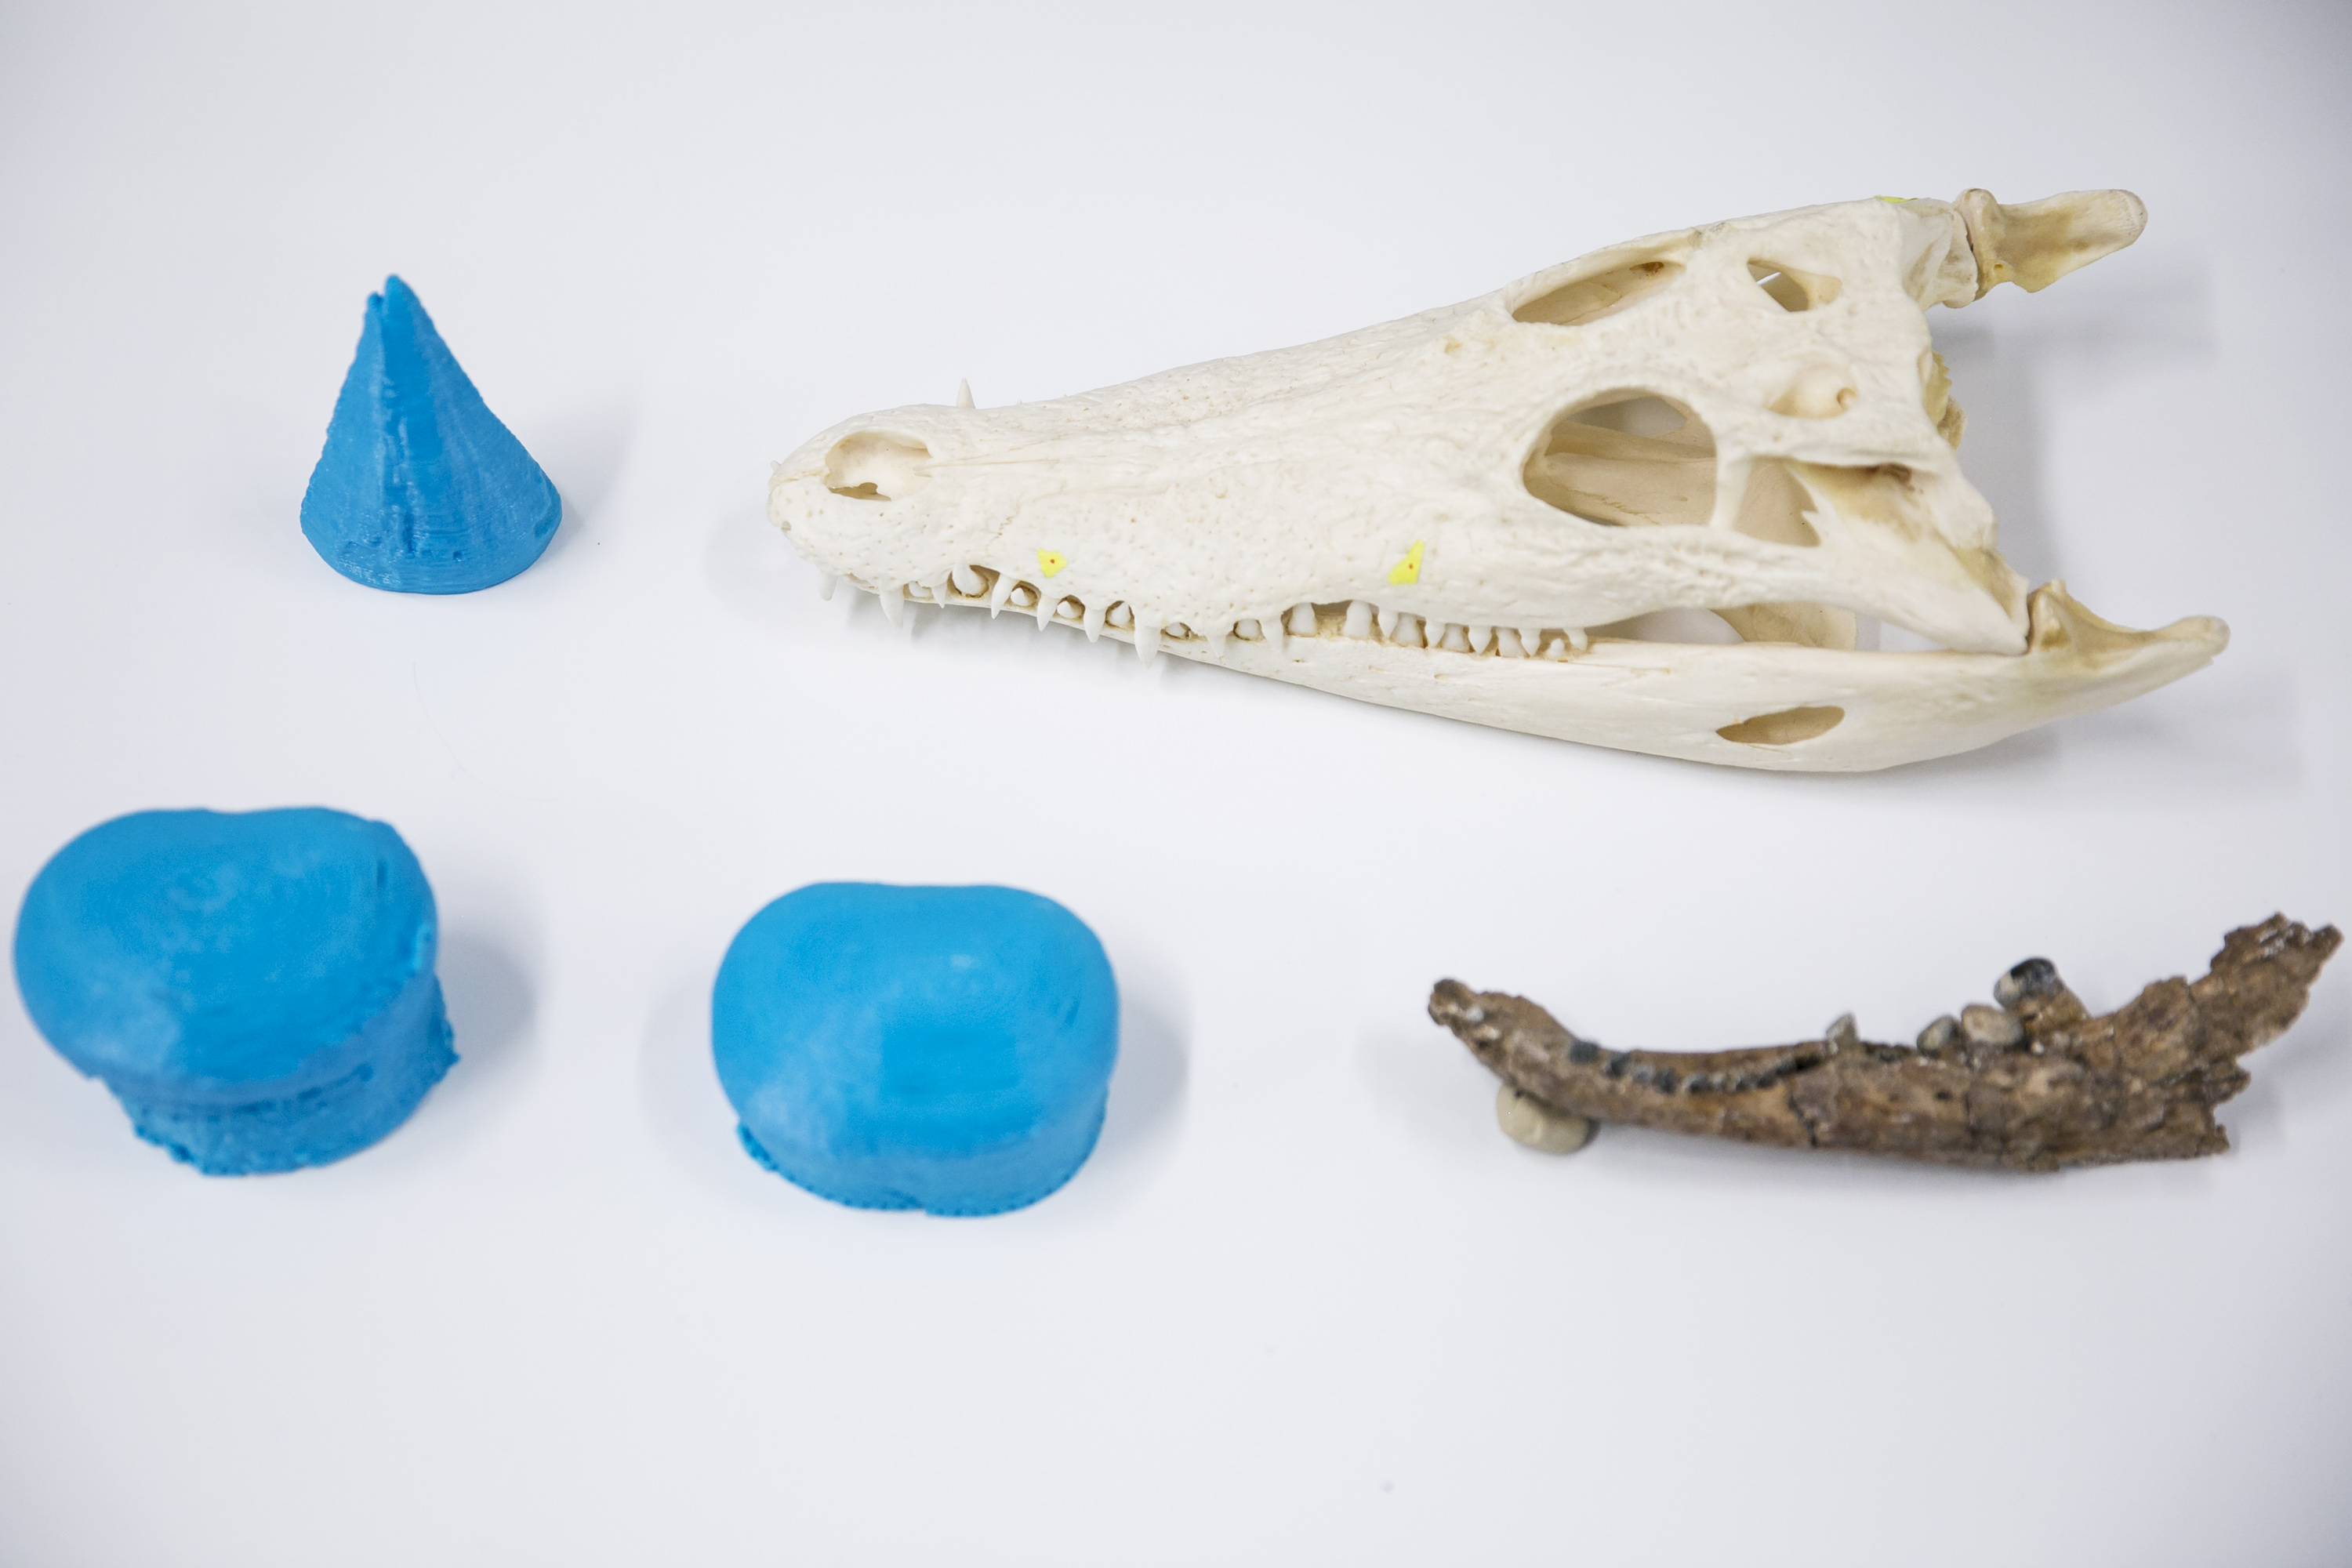 Different shaped 3D printed teeth next to animals each sample belonged to.